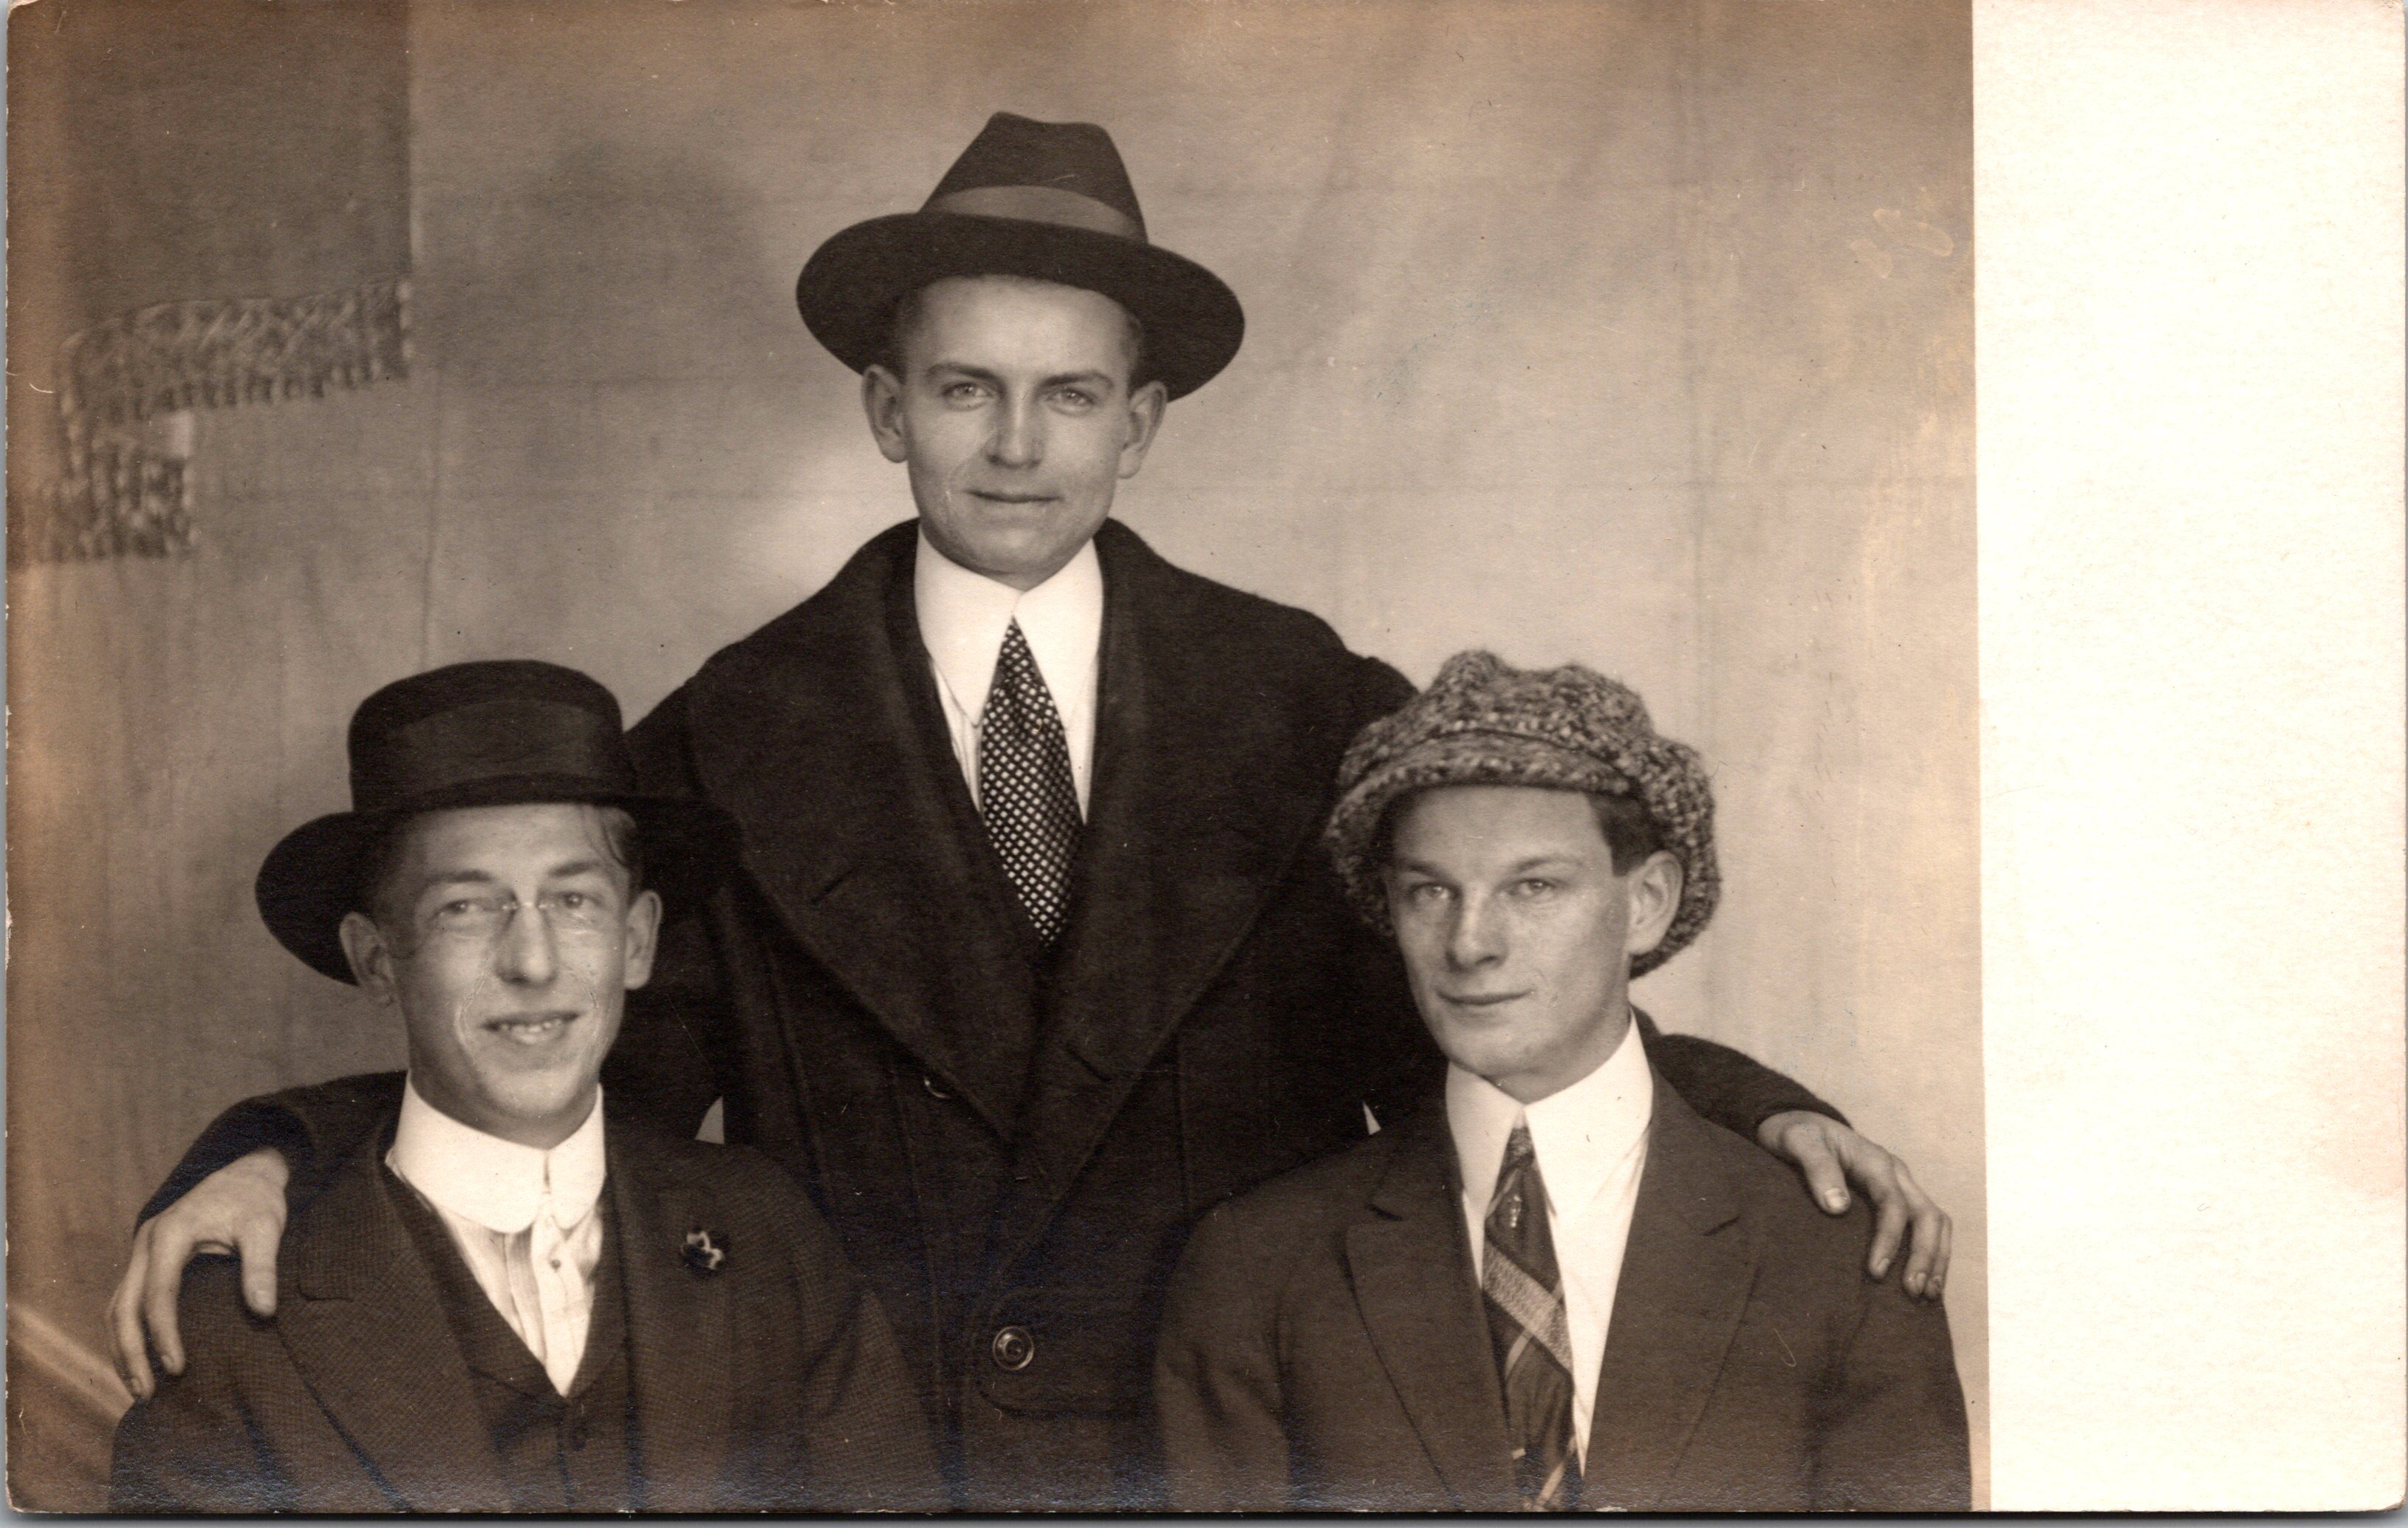 men-and-hats_0001-1